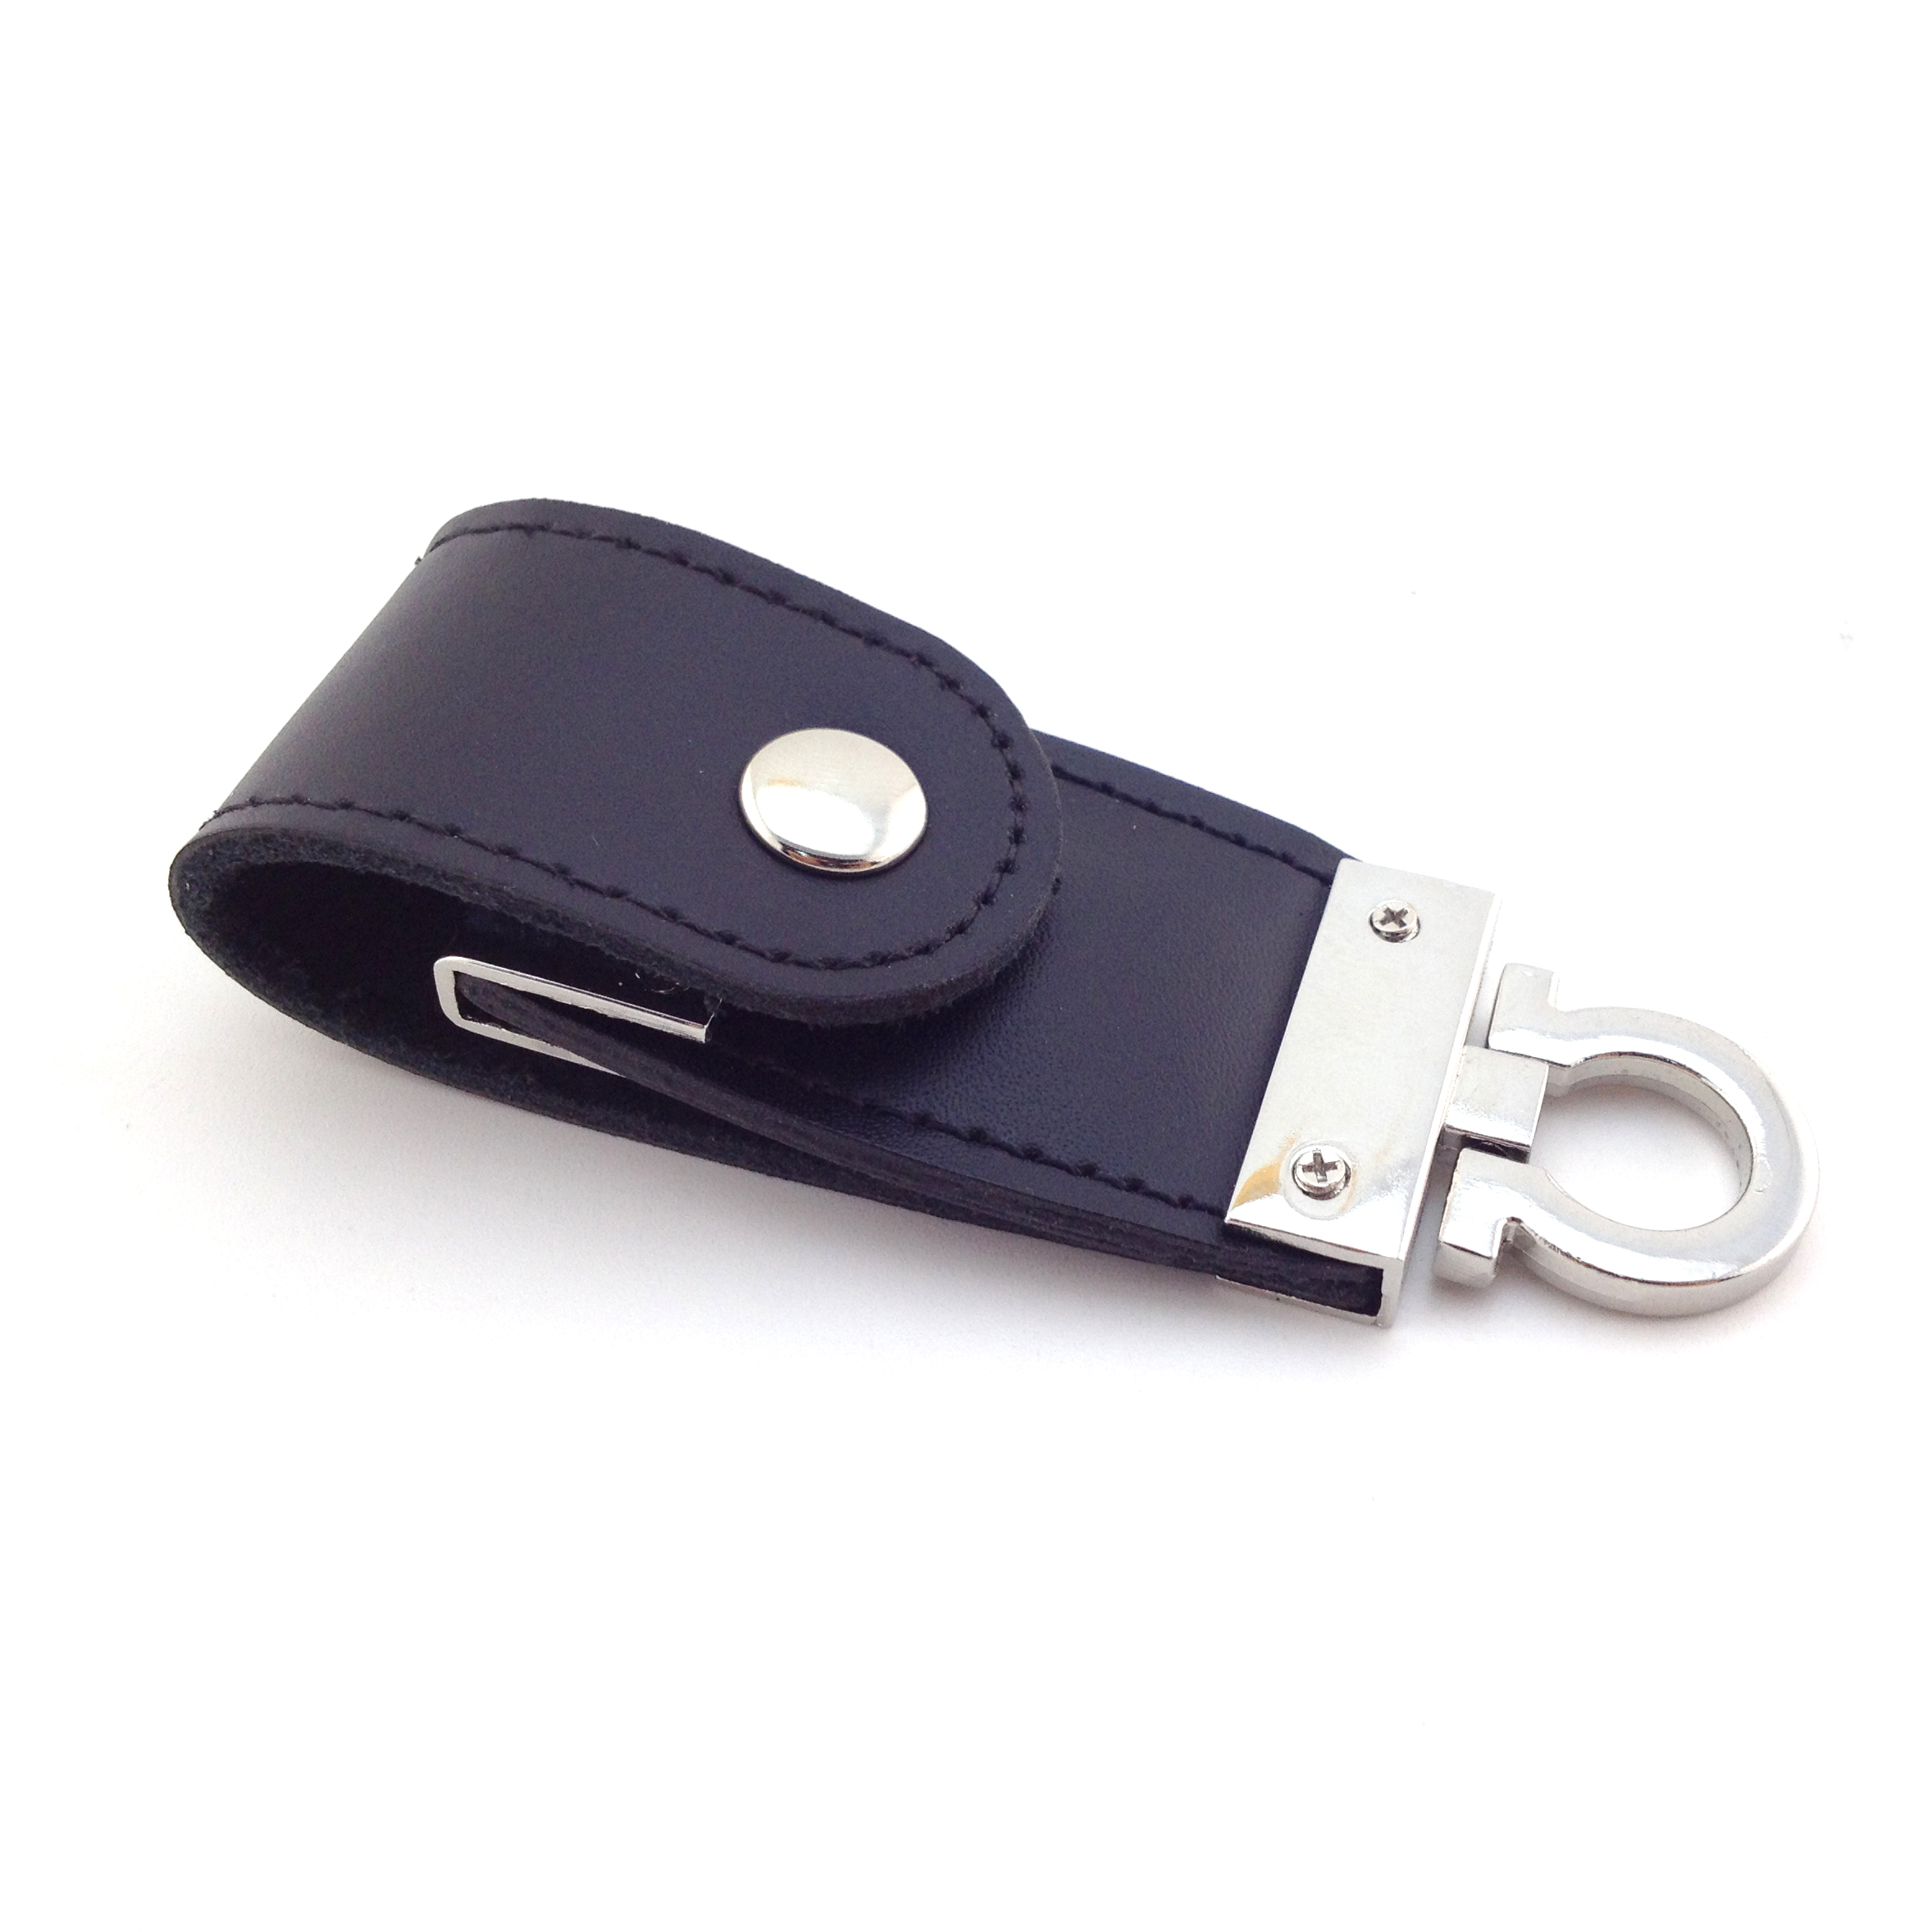 Leather 2 USB Drive